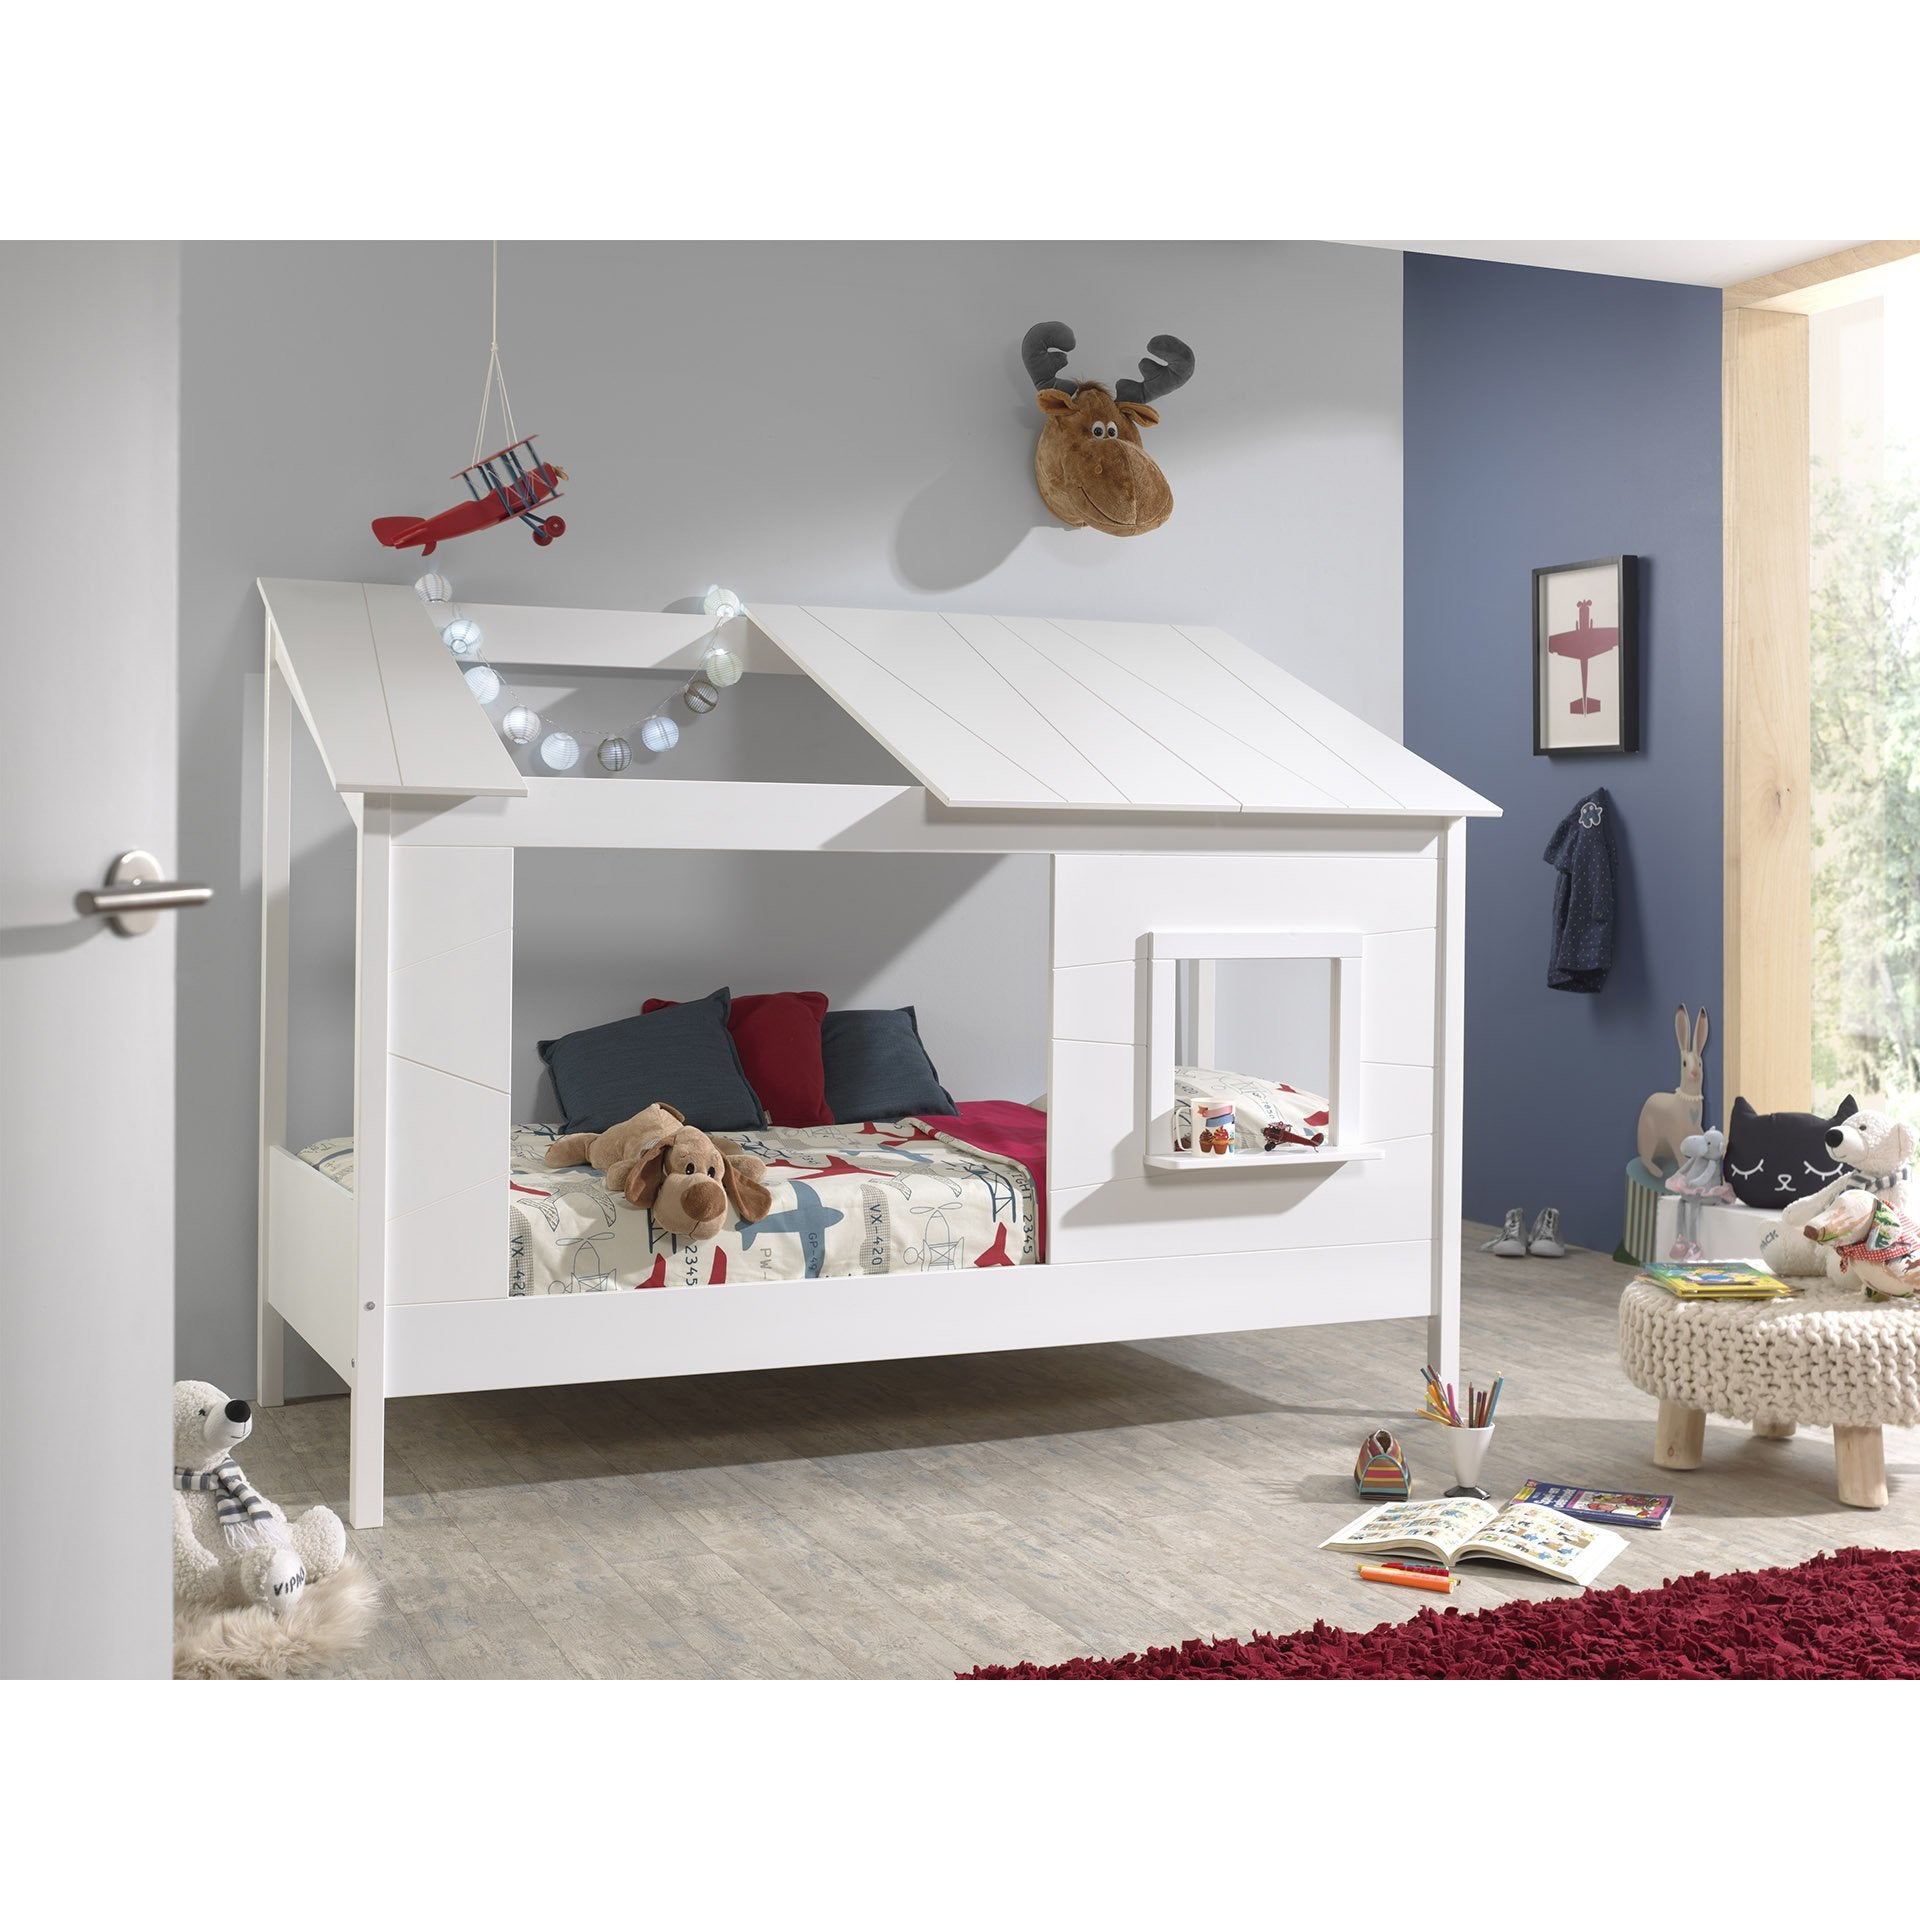 Kids - Housebed with Window in White